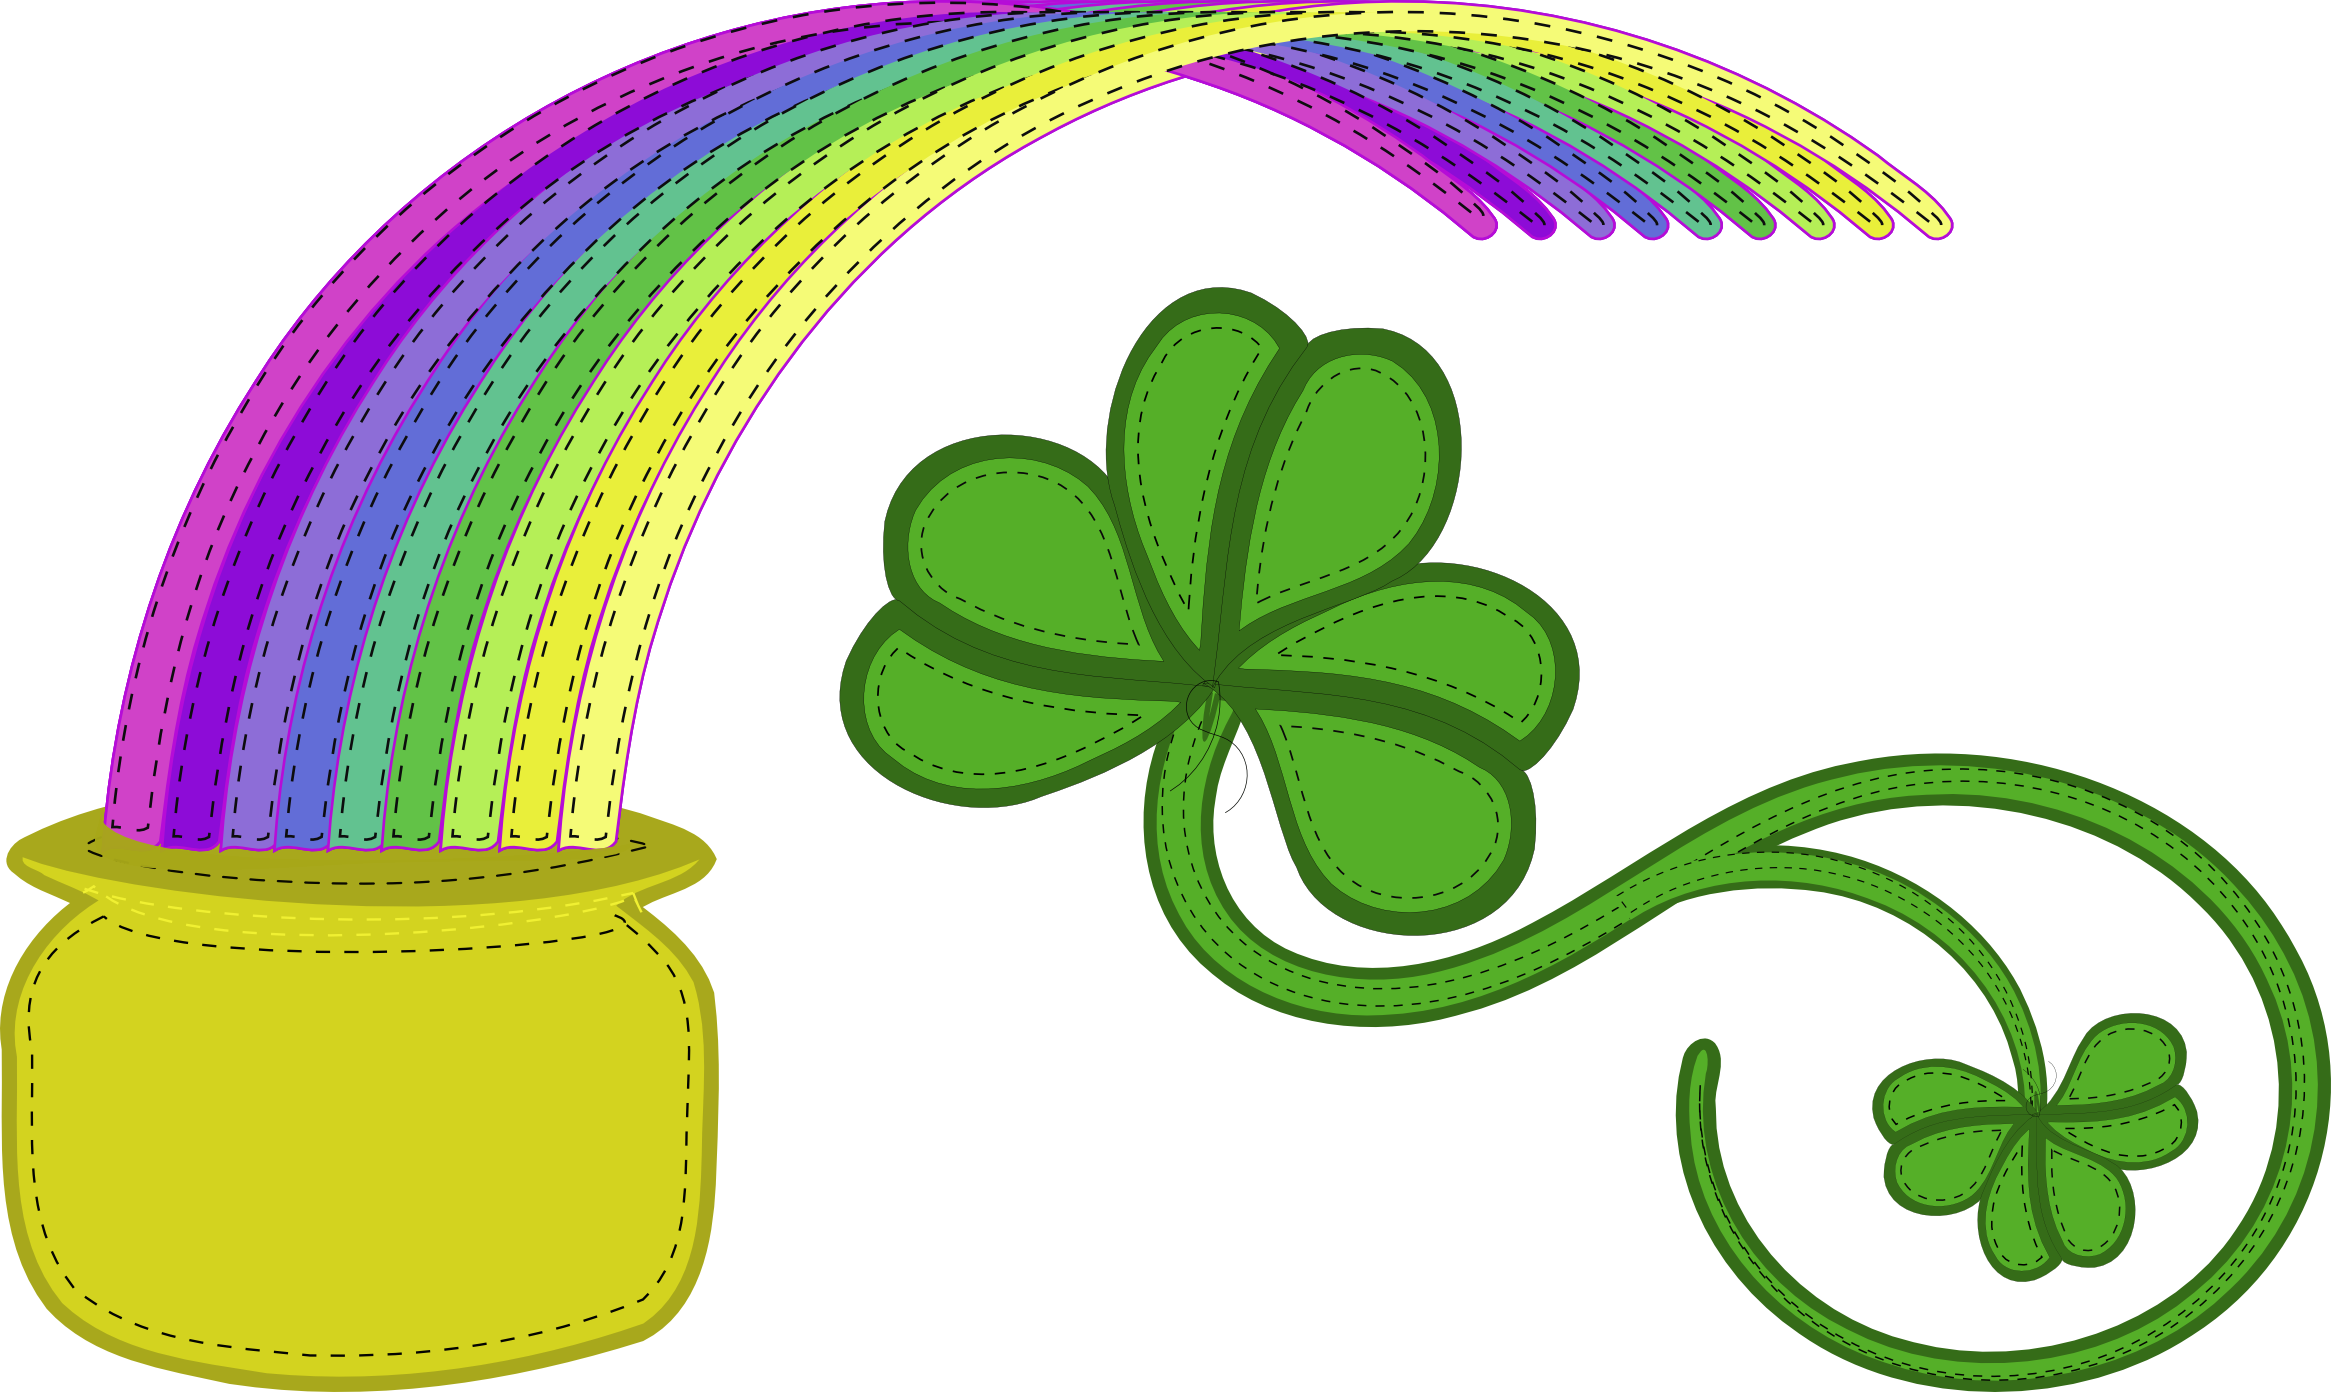 2017 clipart st patrick's day. Patty s eye draw